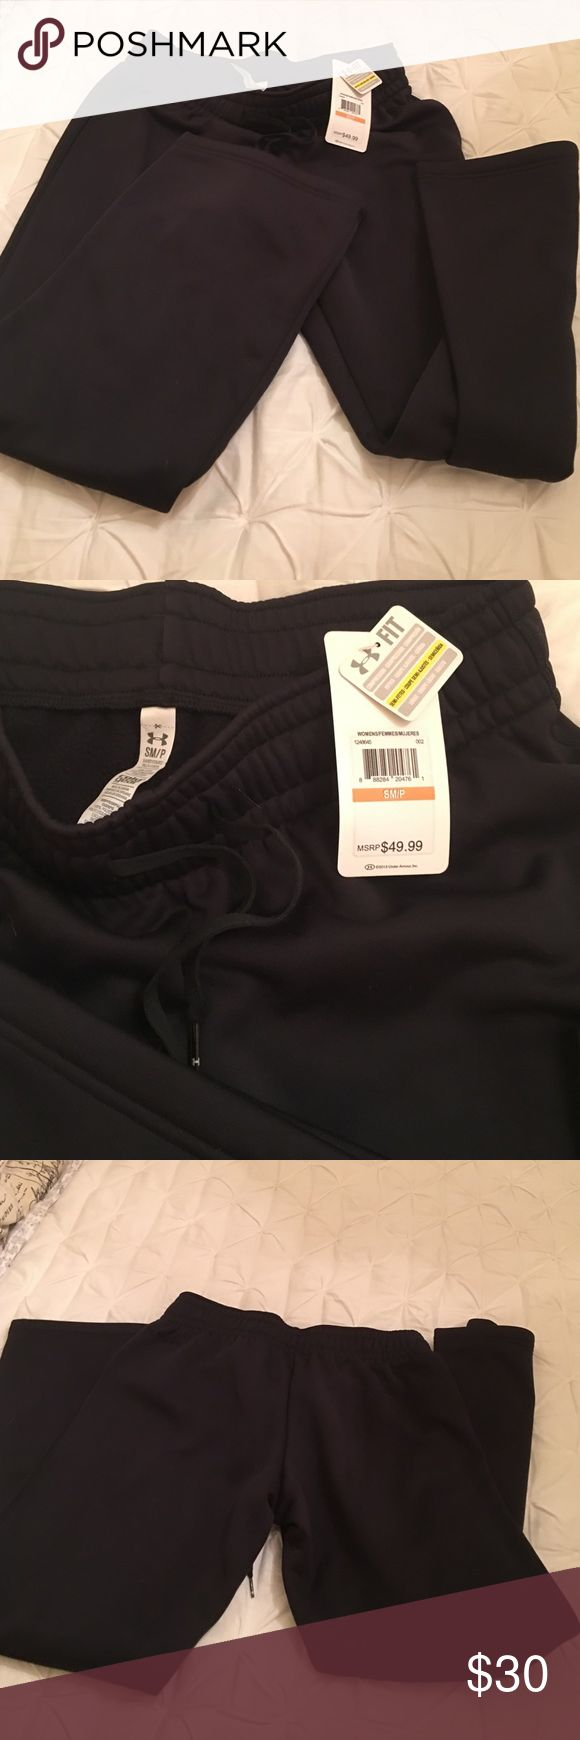 NWT under armour sweat pants size small NWT under armour sweat pants size small Under Armour Pants